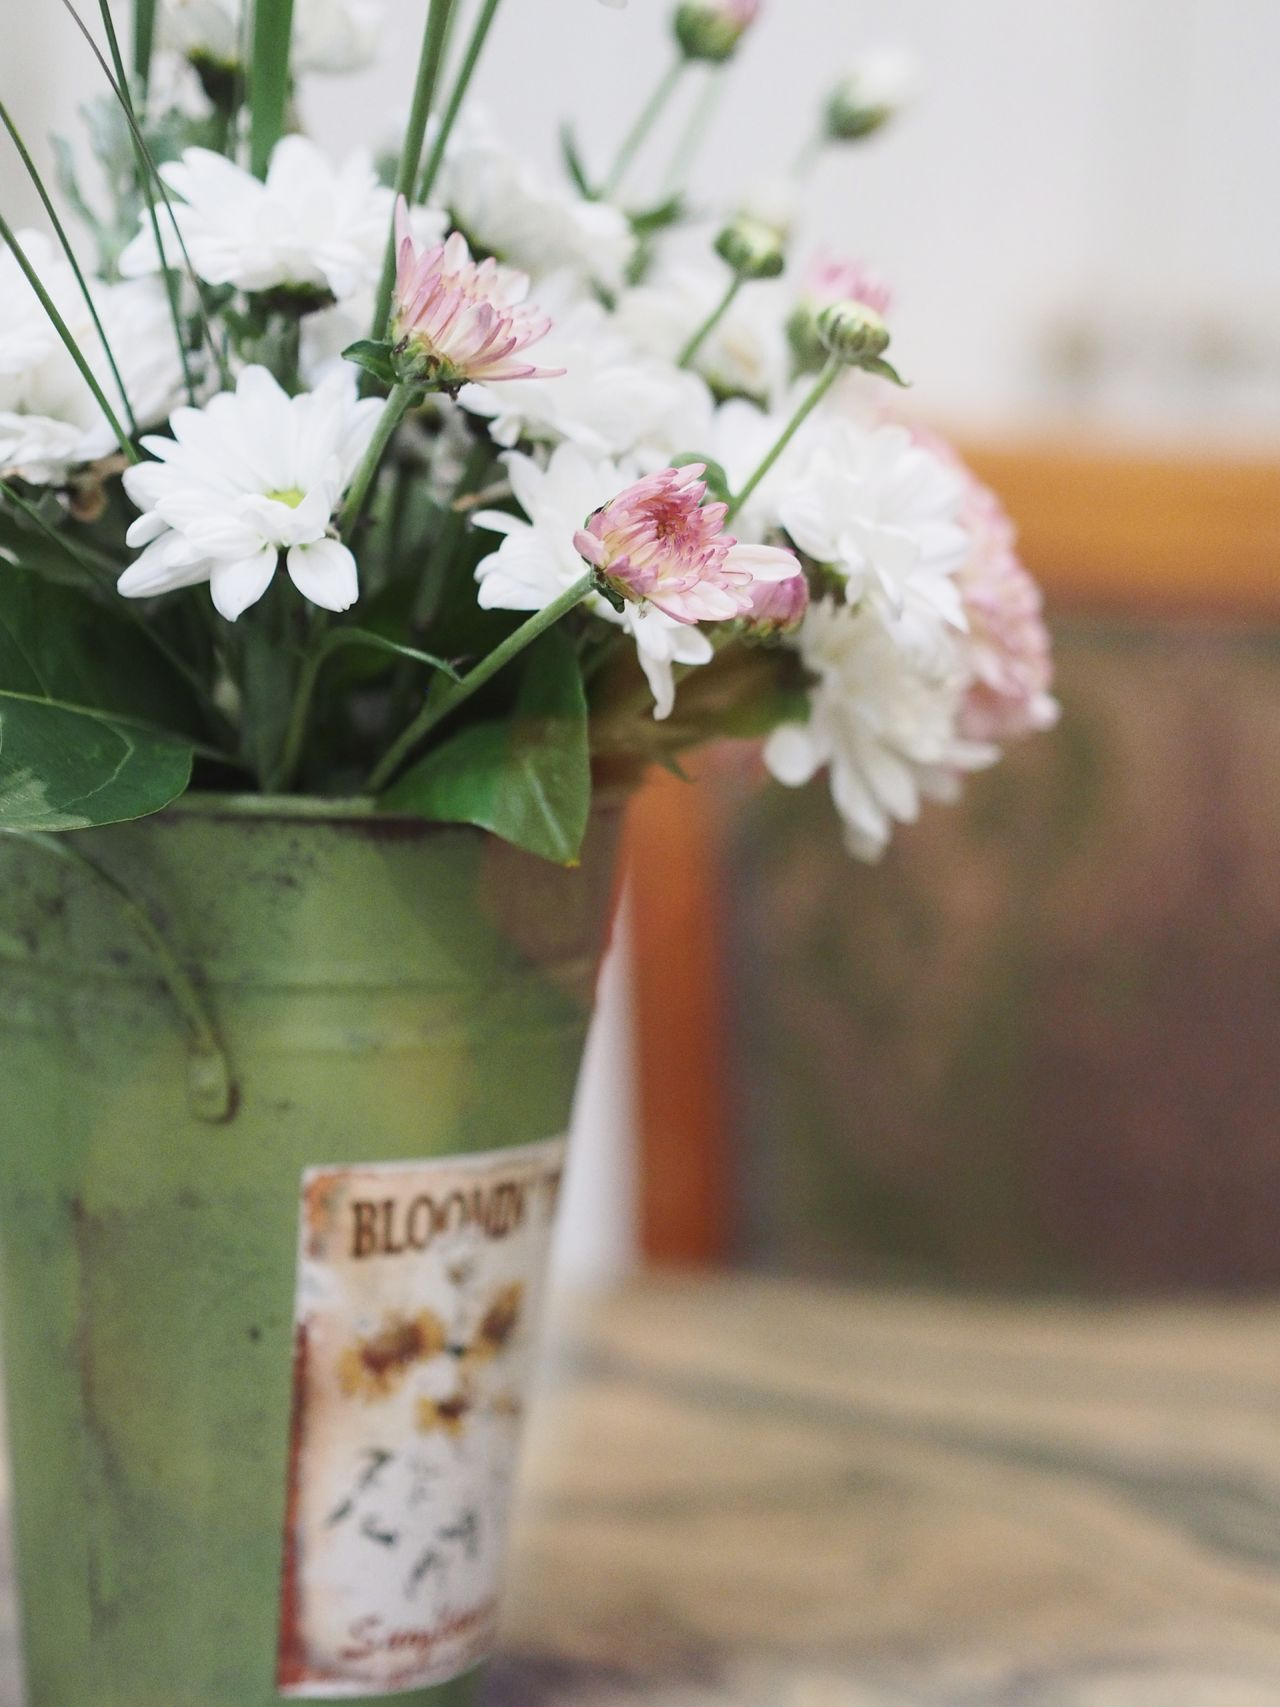 Flower No People Plant Vase Fragility Nature Growth Day Indoors  Close-up Freshness Flower Head Beauty In Nature